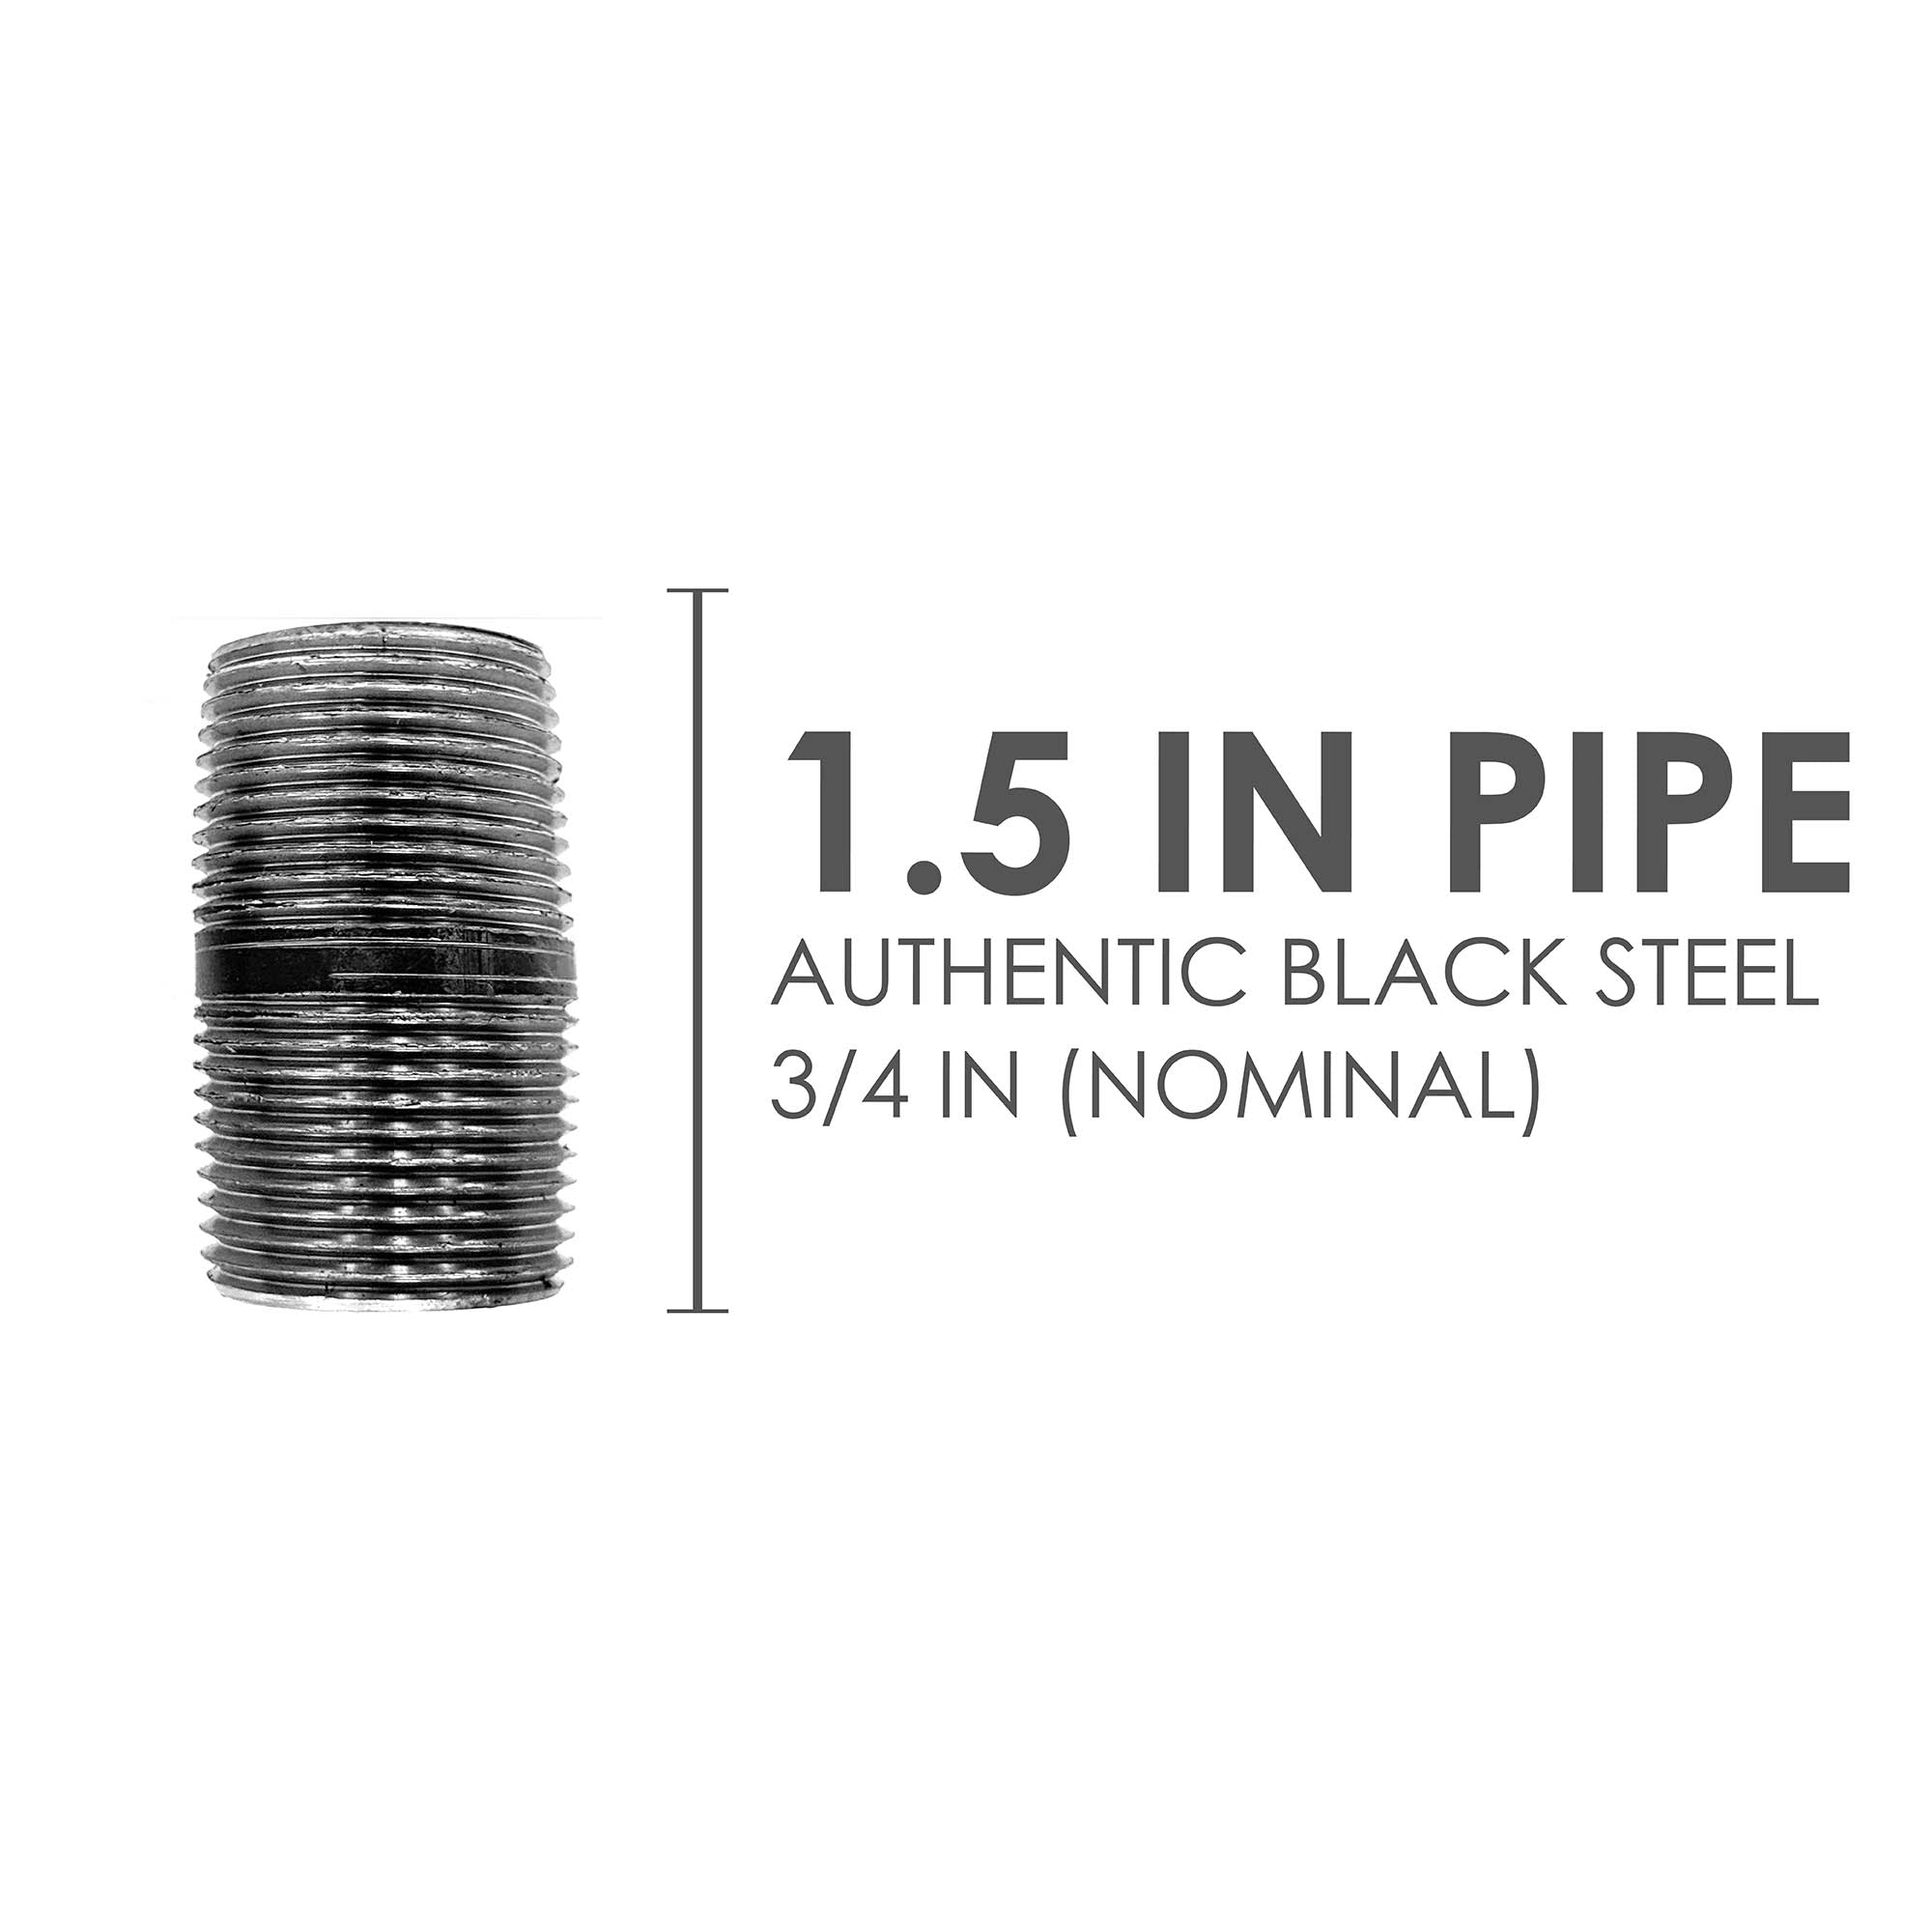 3/4 In X 1 1/2 In Black Pipe